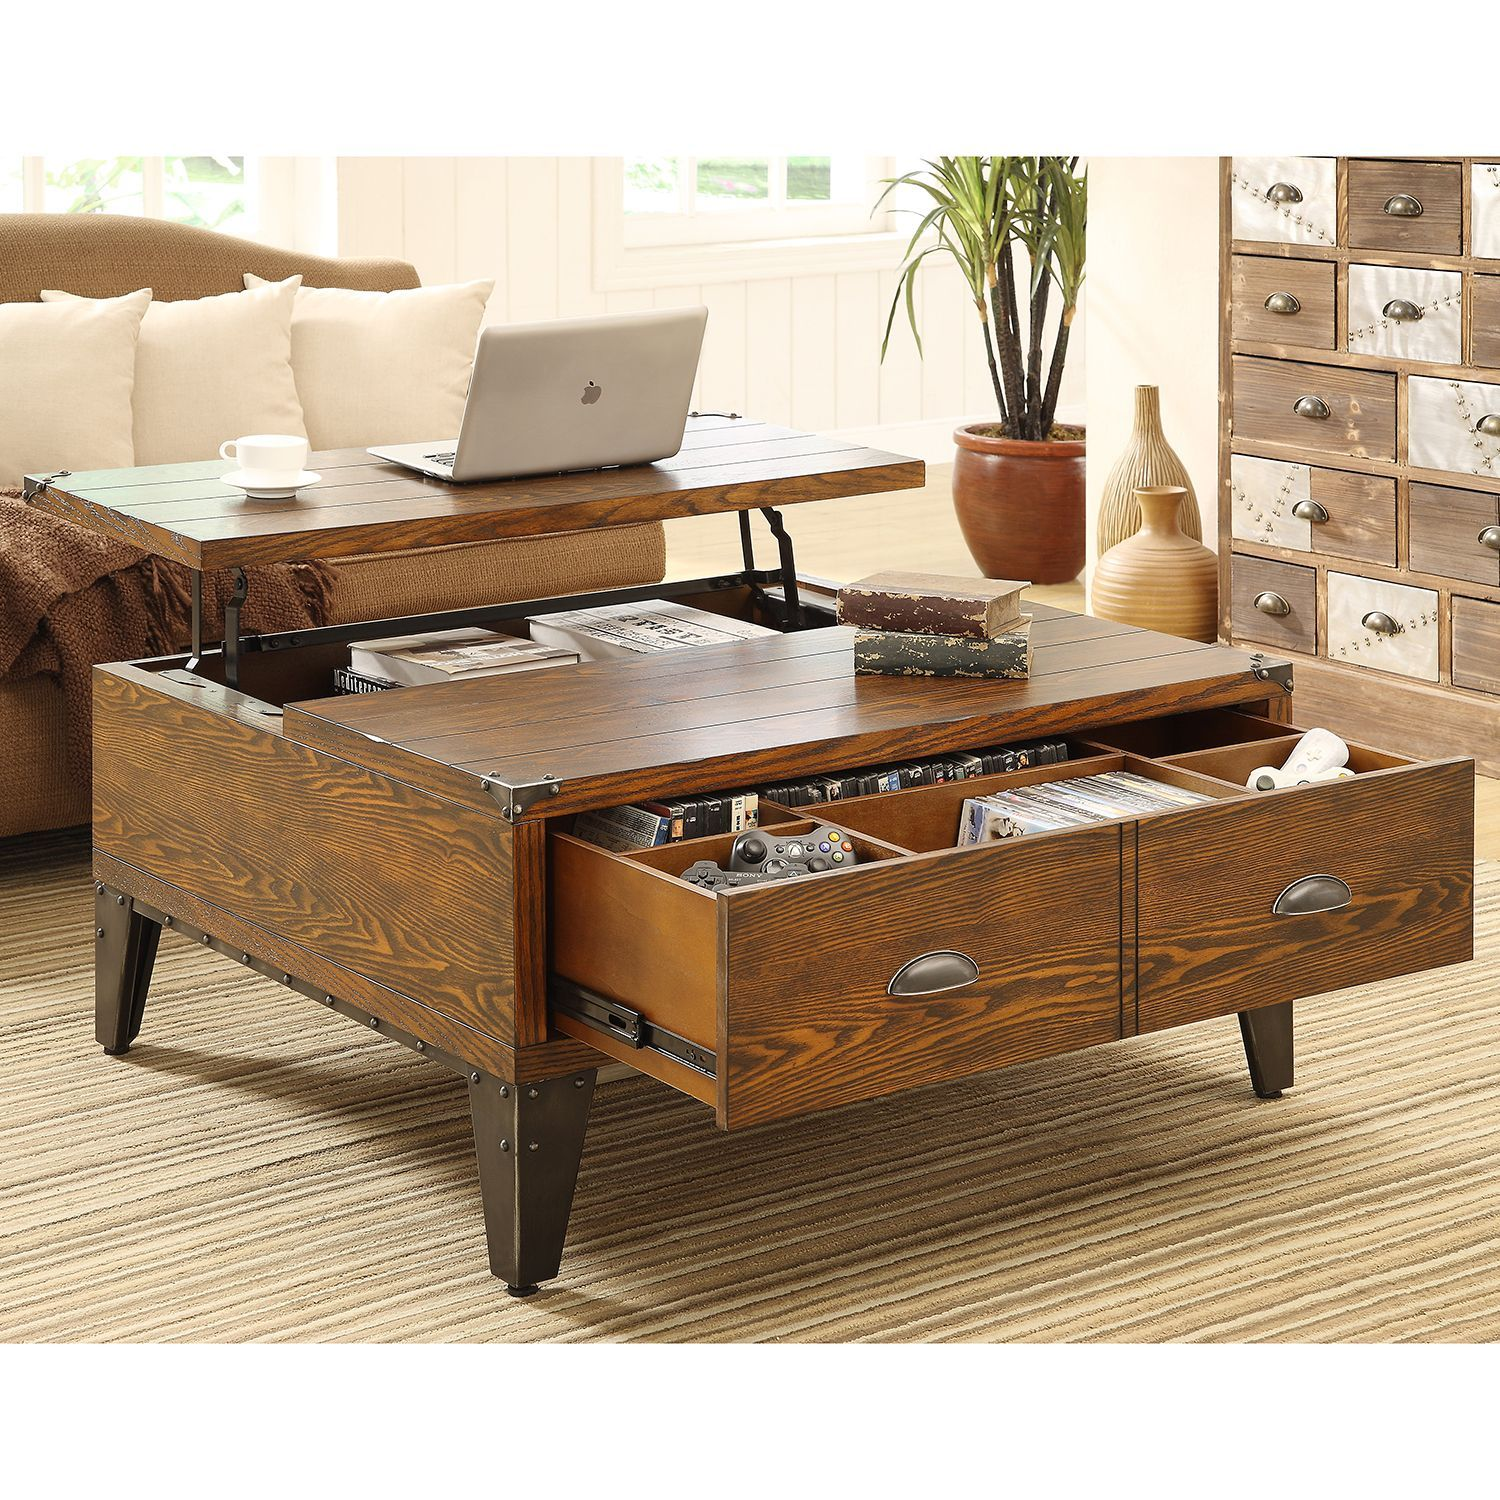 Wellington Lift Top Coffee Table Sams Club For the Home